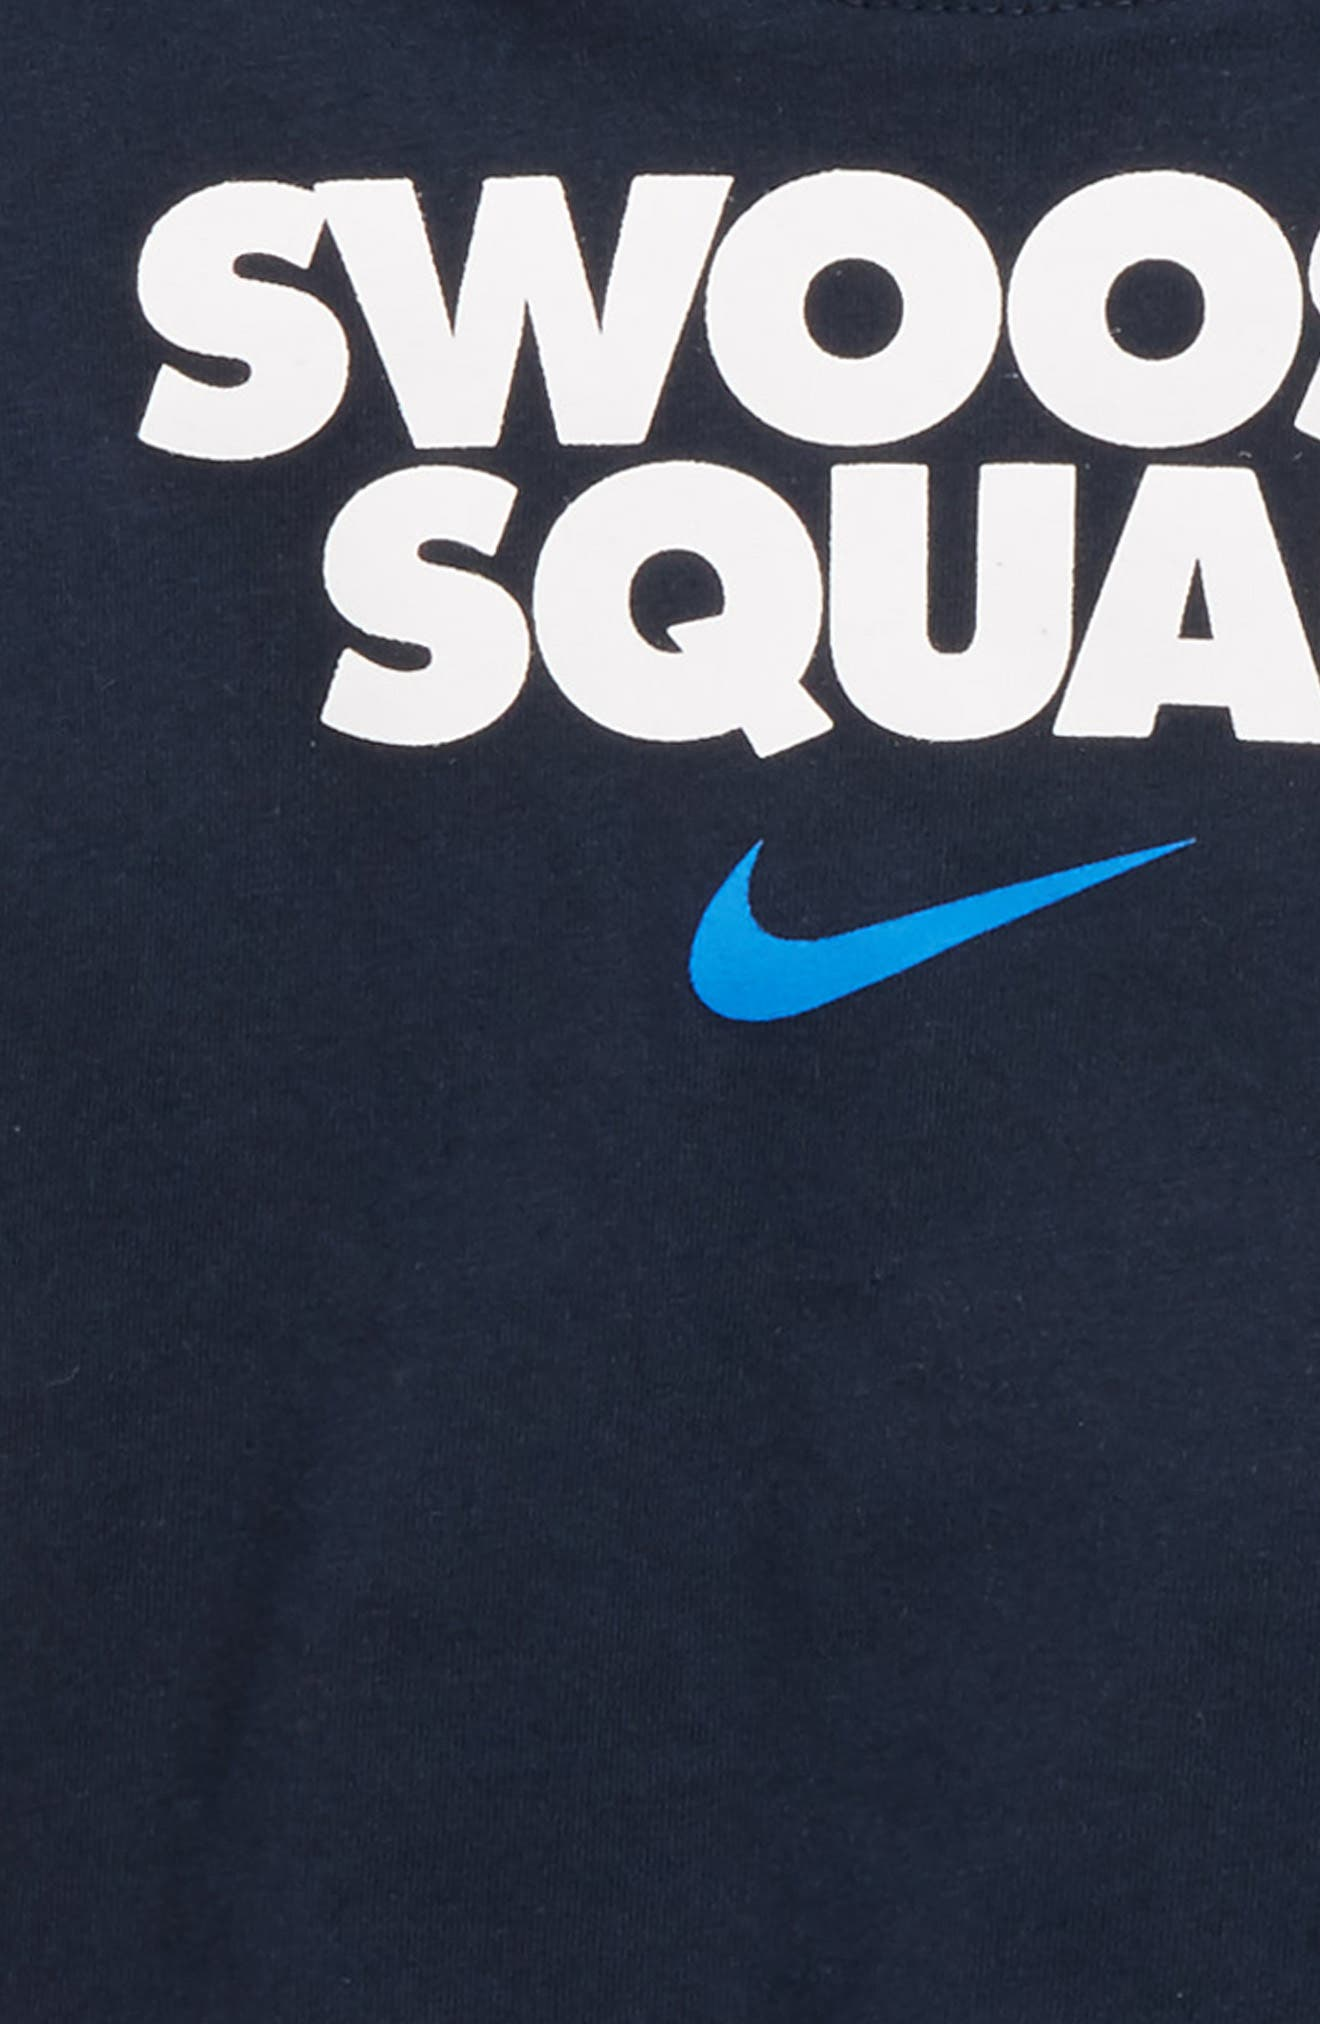 Swoosh Squad T-Shirt & Shorts Set,                             Alternate thumbnail 2, color,                             Hyper Royal